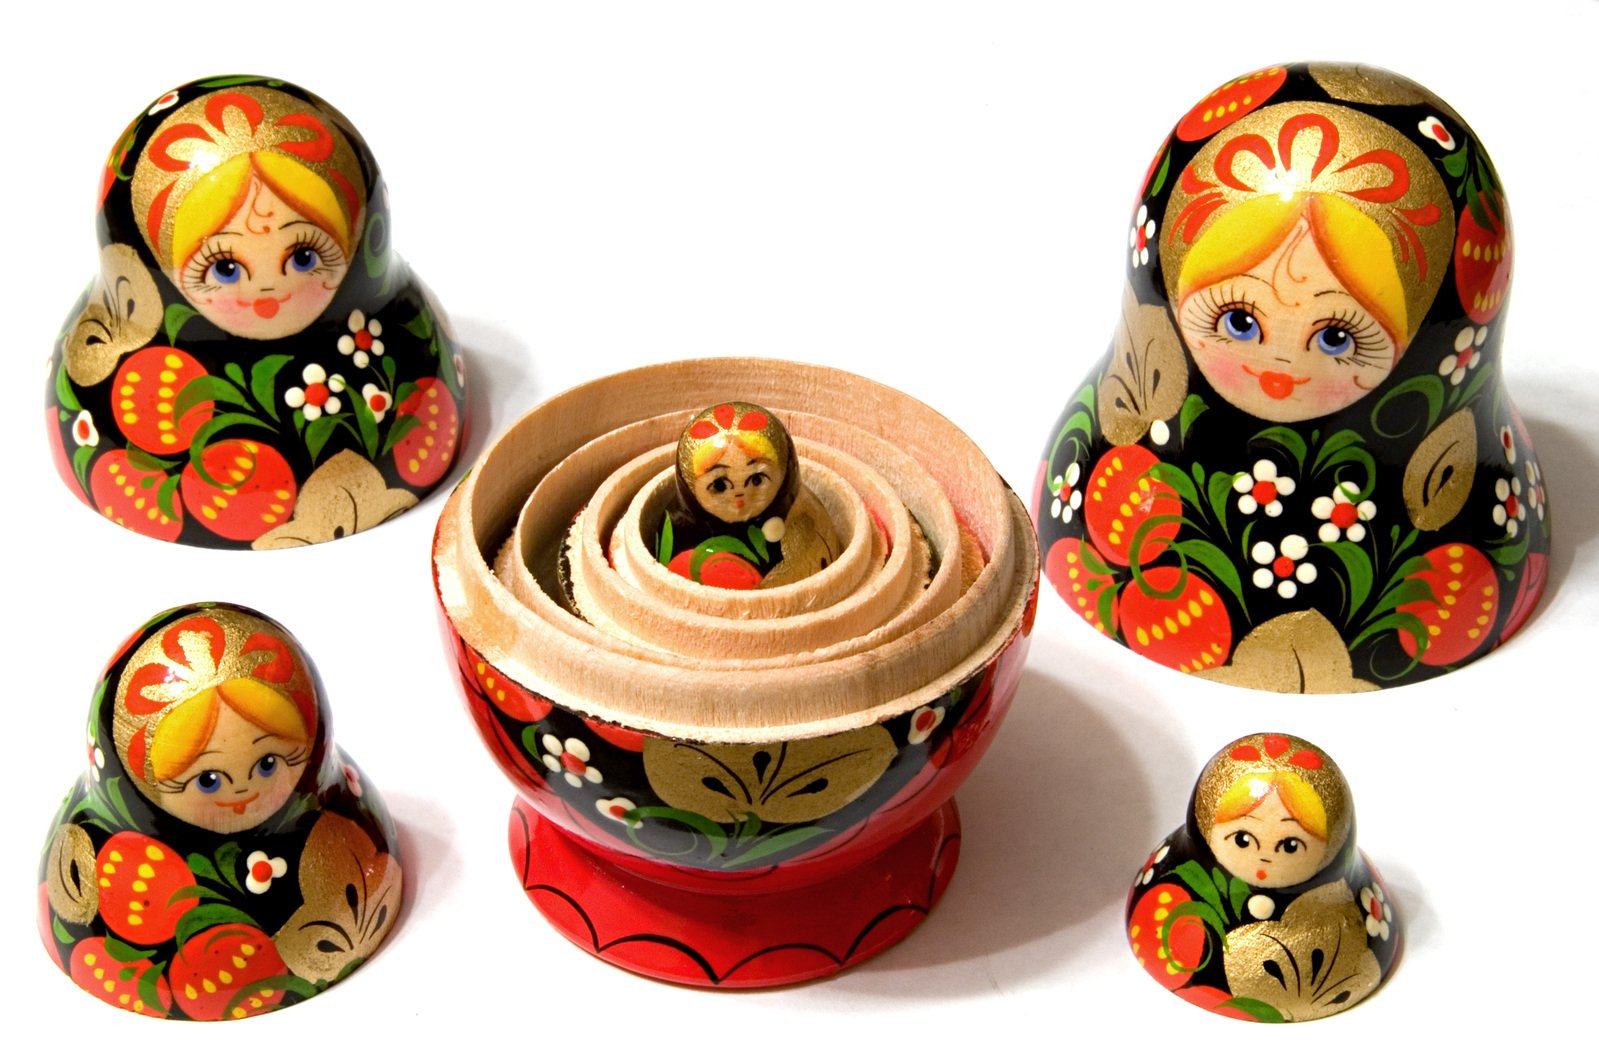 Free Russian Nesting Doll Stock Photo - FreeImages.com